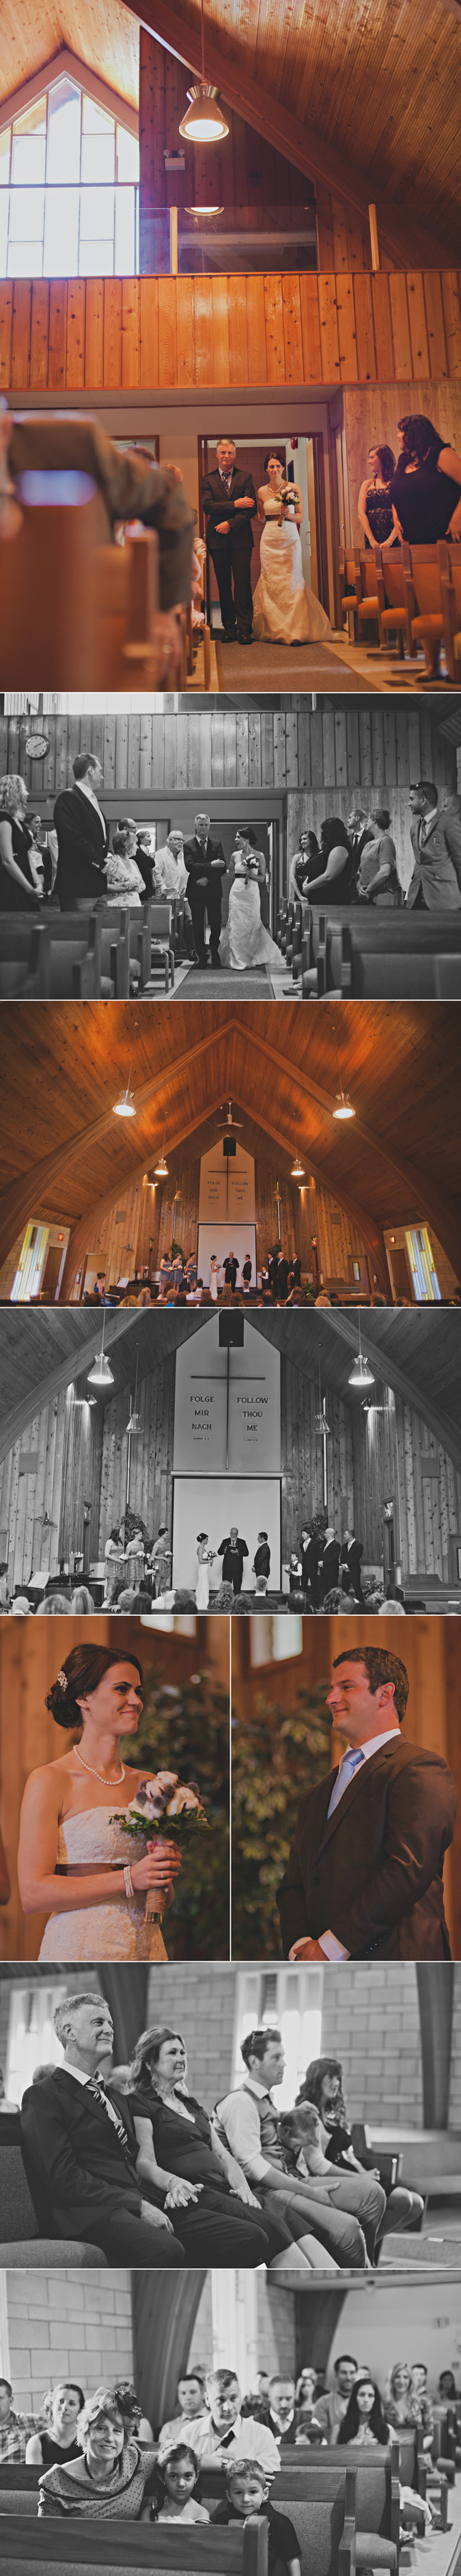 christian wedding ceremony in church near campbell river, vancouver island, bc